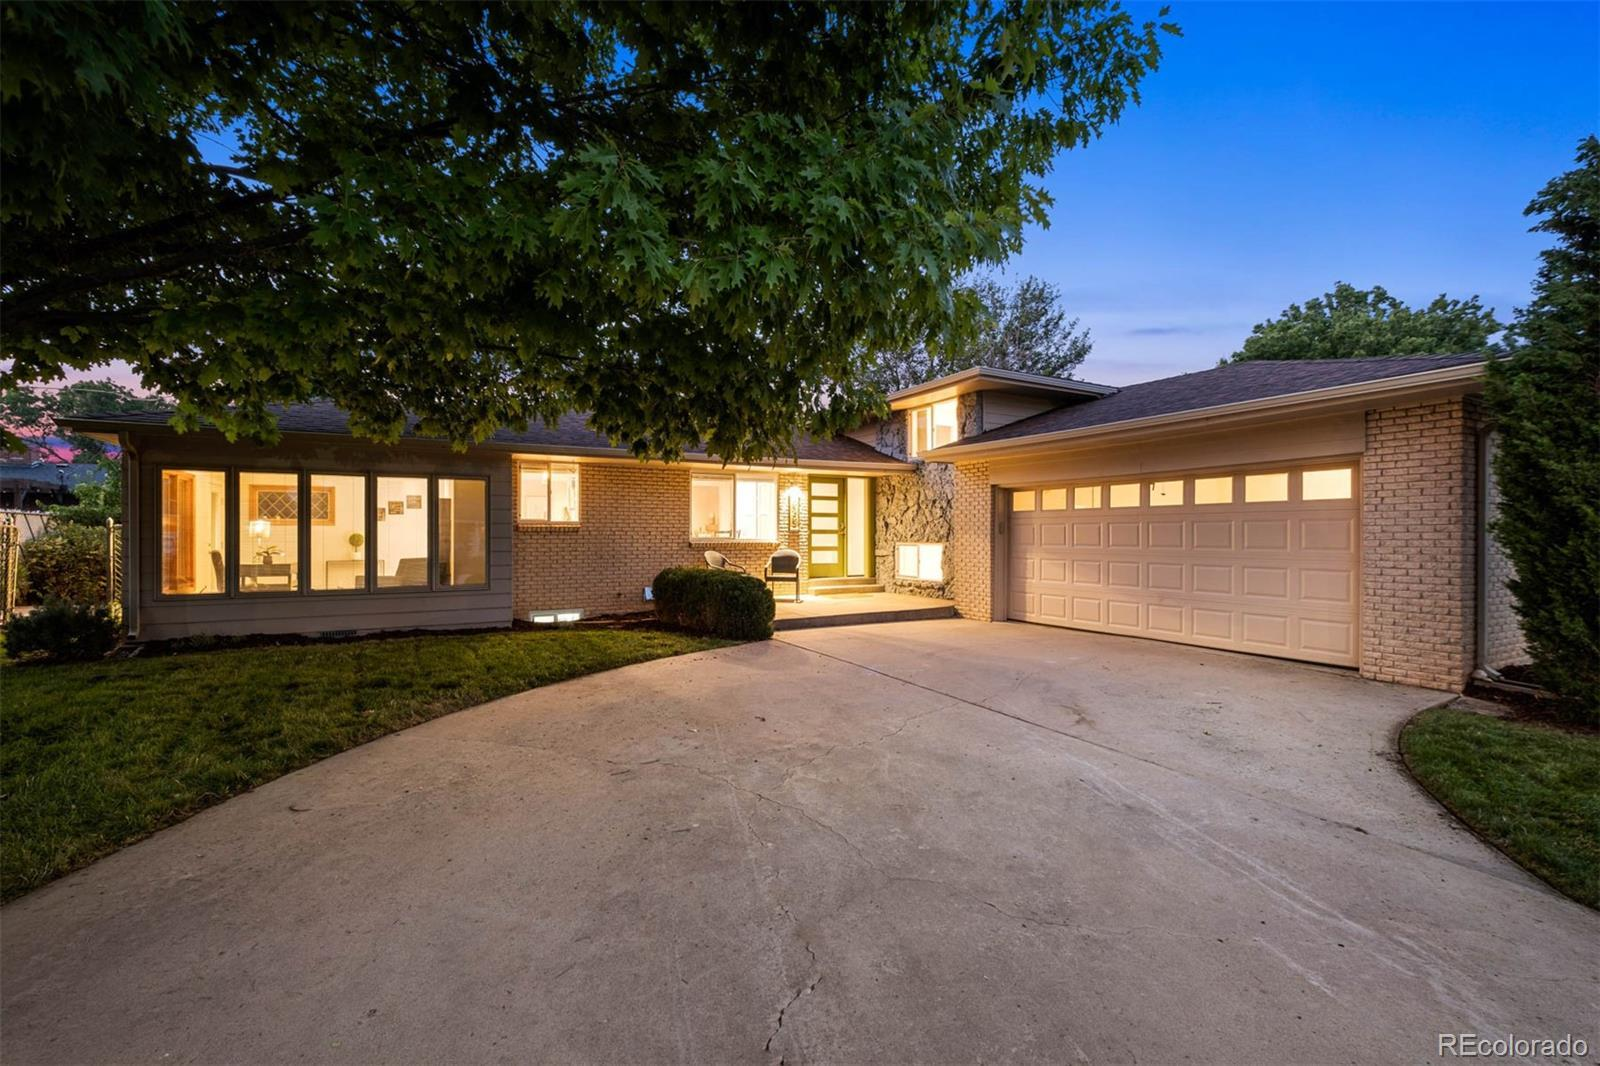 8353 W 70th Place, Arvada, CO 80004 - #: 4028957